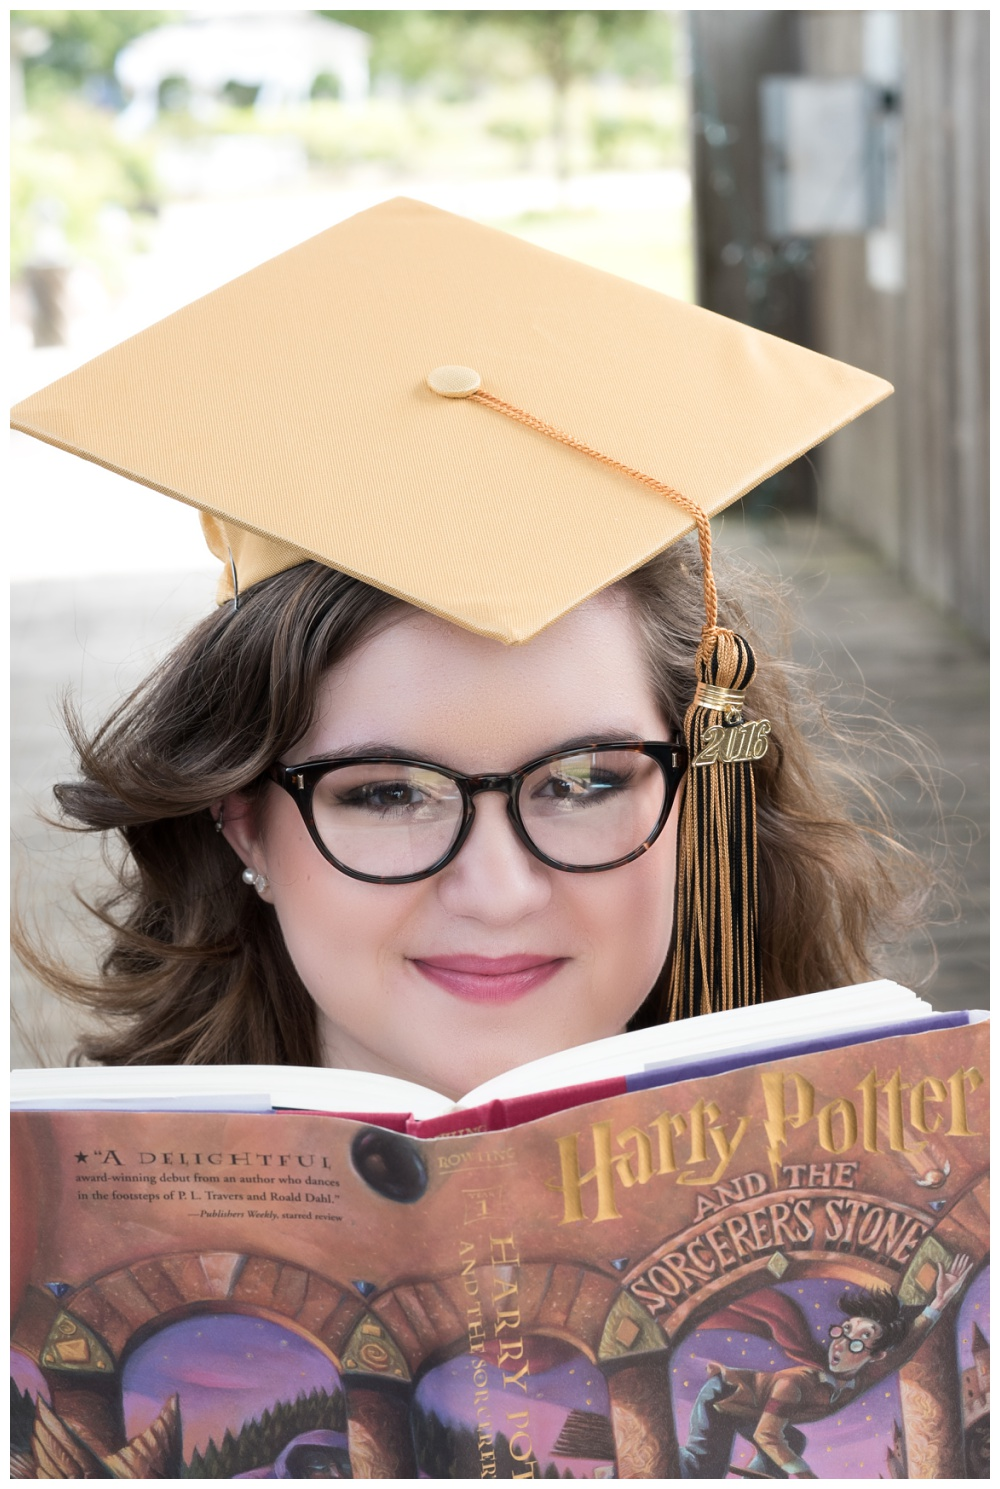 Creations by Jewel_Harry Potter_Senior Pictures.jpg